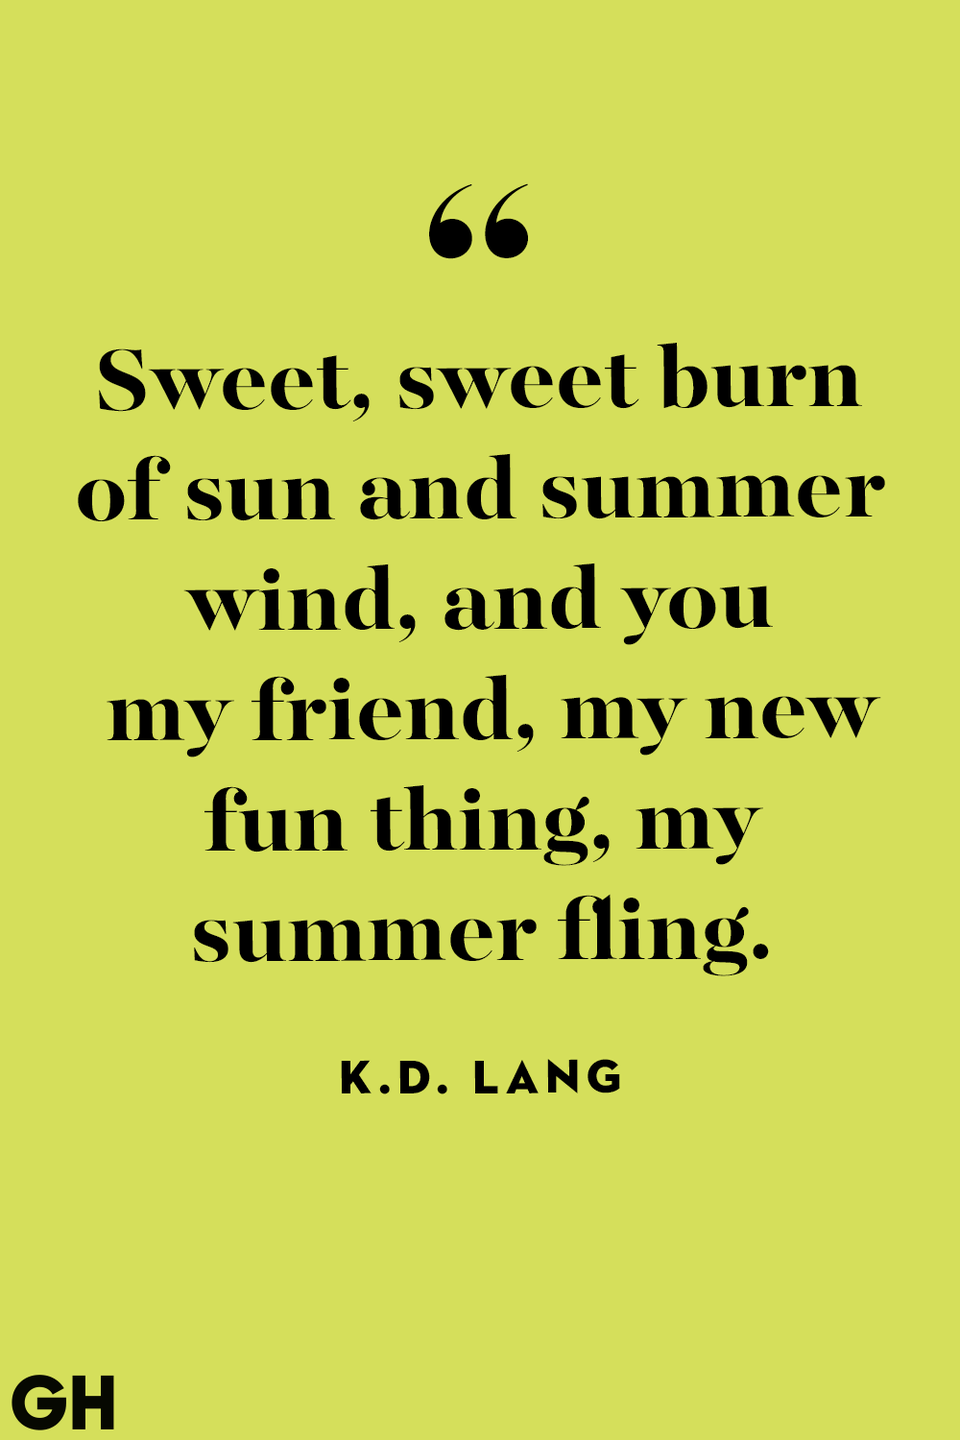 """<p>""""Sweet, sweet burn of sun and summer wind, and you my friend, my new fun thing, my summer fling.""""</p>"""